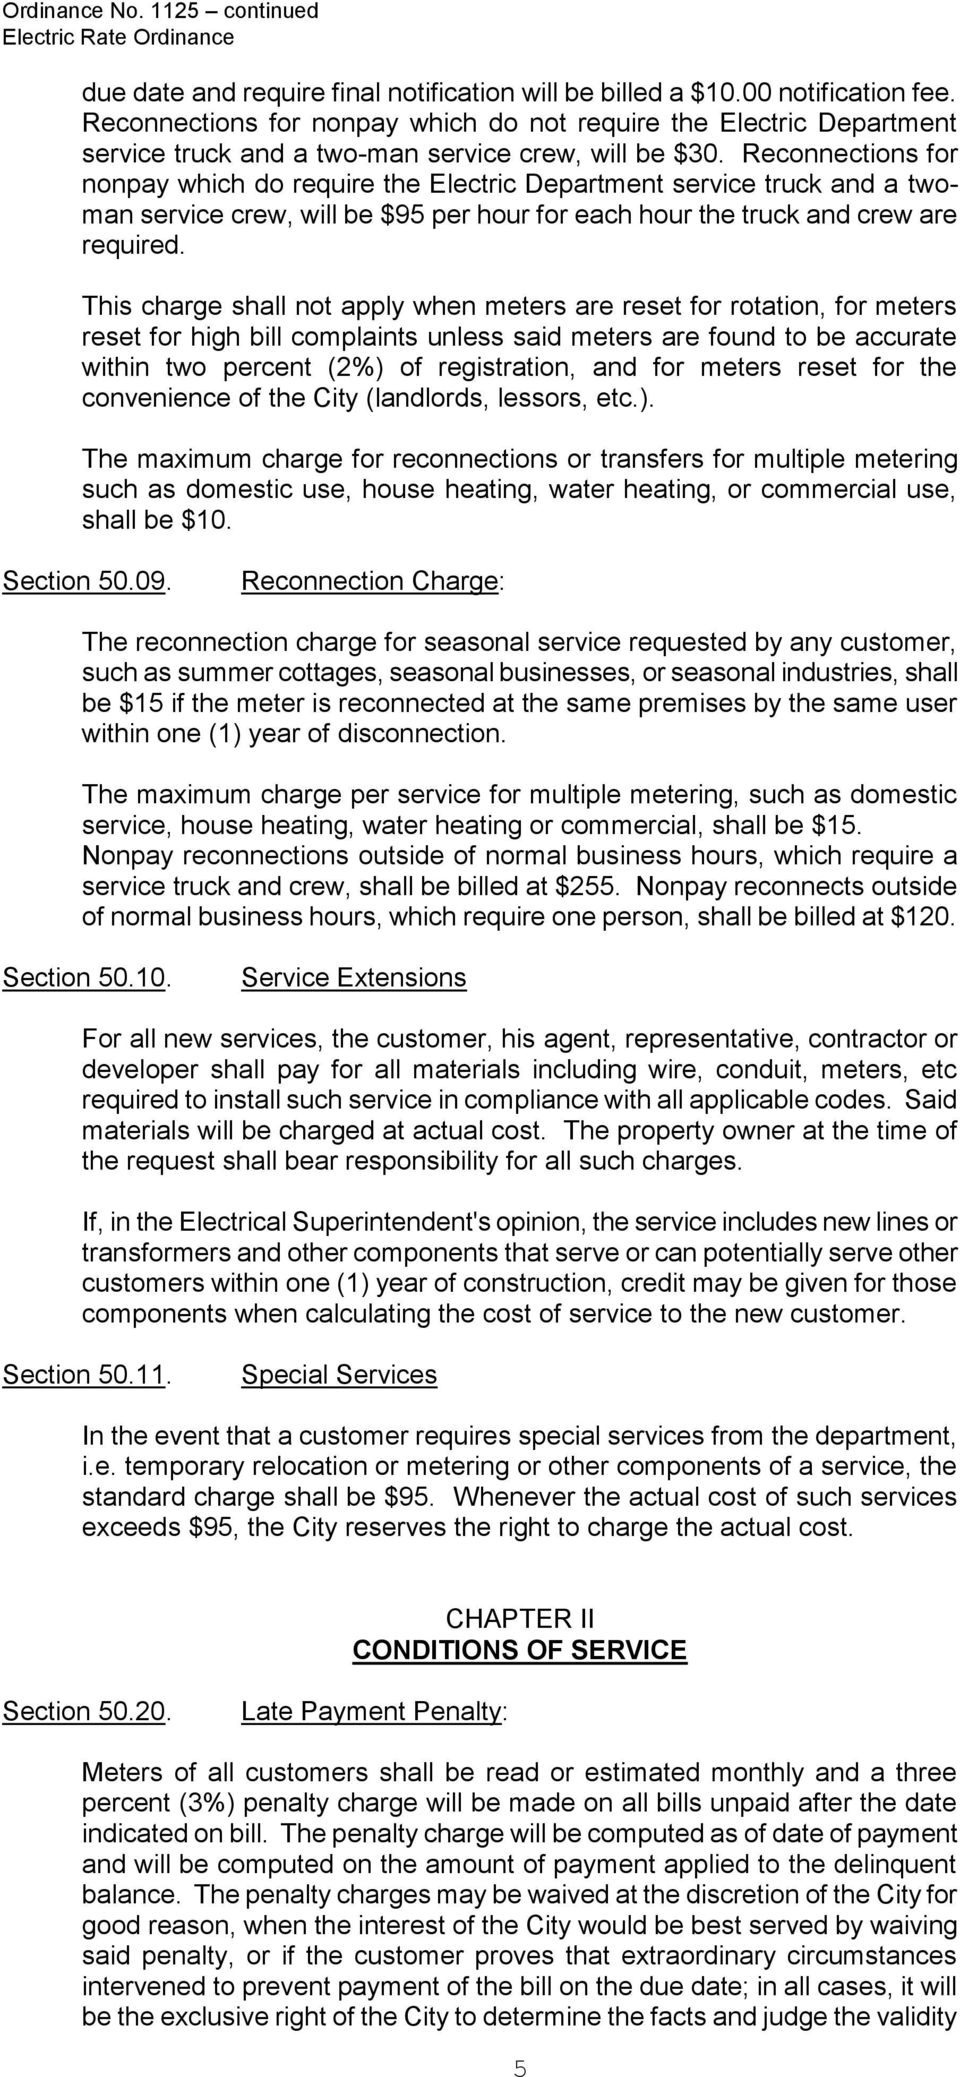 Reconnections for nonpay which do require the Electric Department service truck and a twoman service crew, will be $95 per hour for each hour the truck and crew are required.